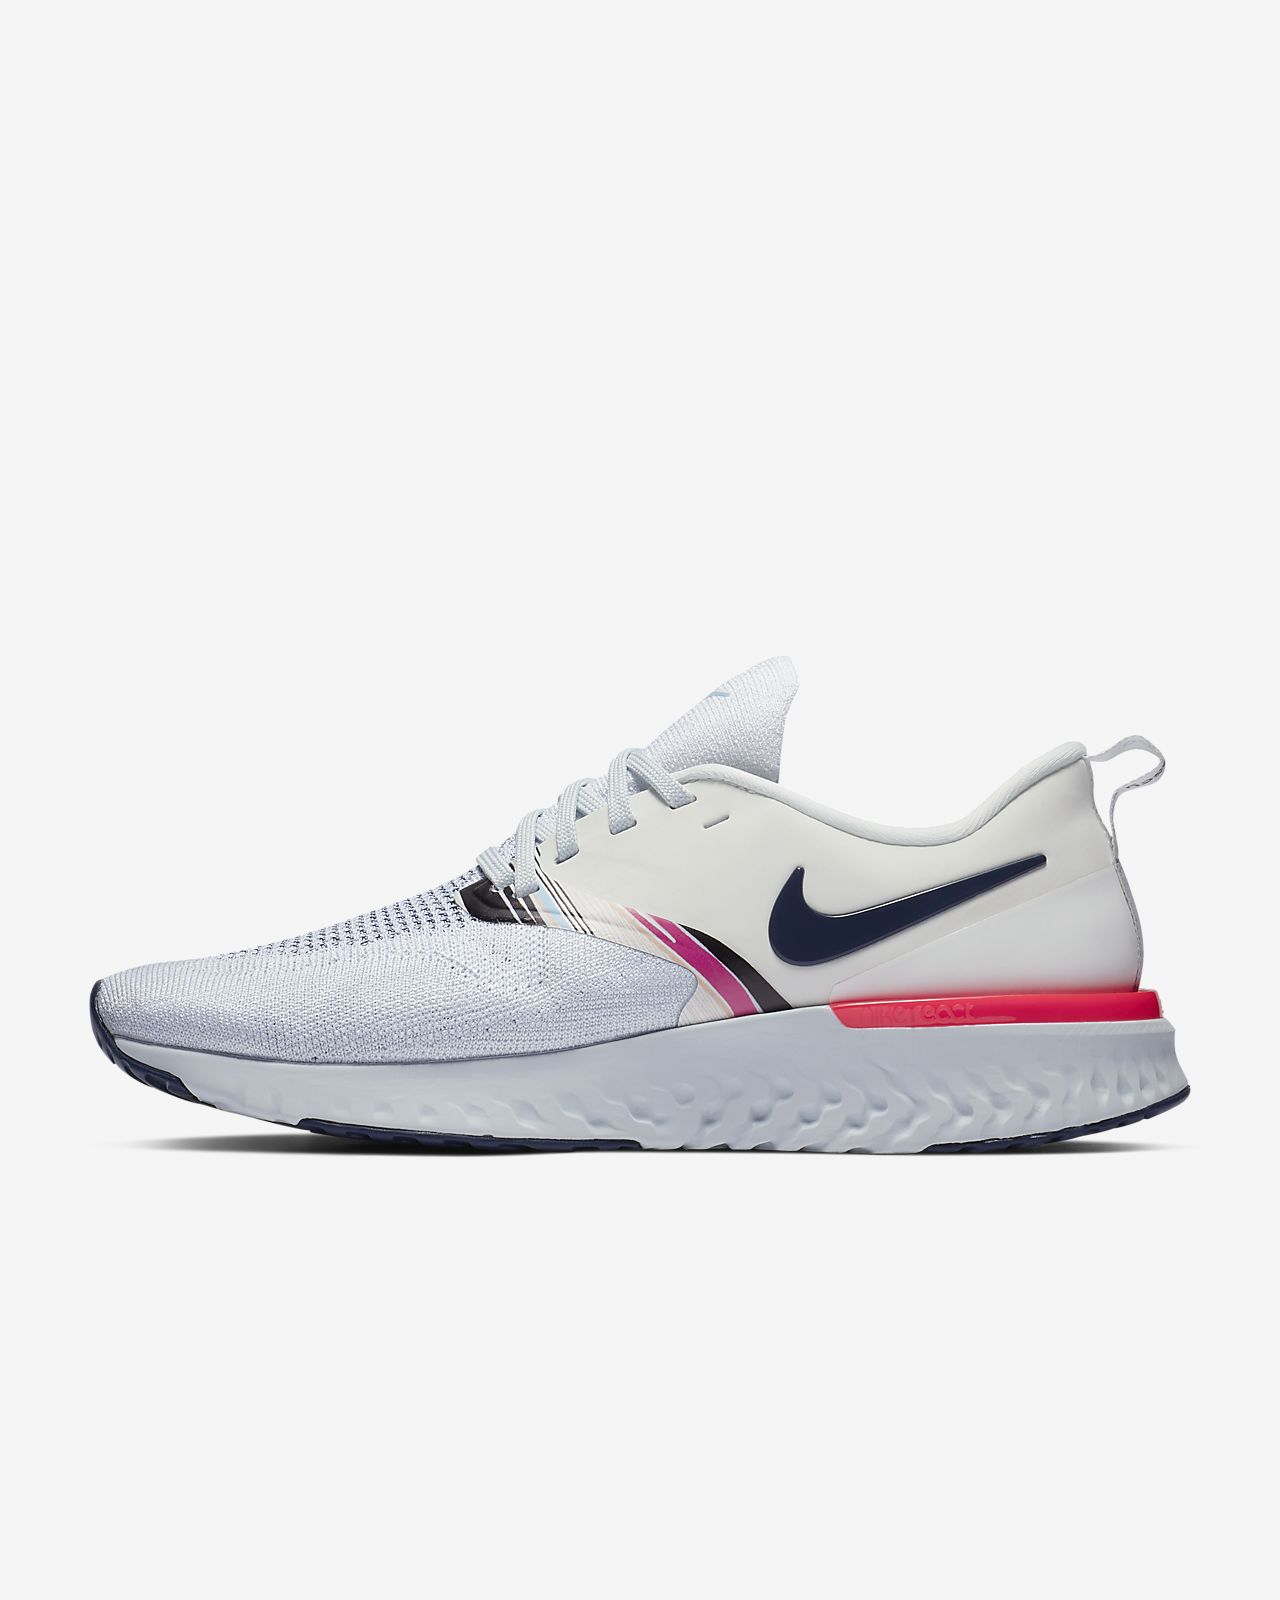 cheap for discount d0247 10312 ... Nike Odyssey React Flyknit 2 Premium Zapatillas de running - Mujer